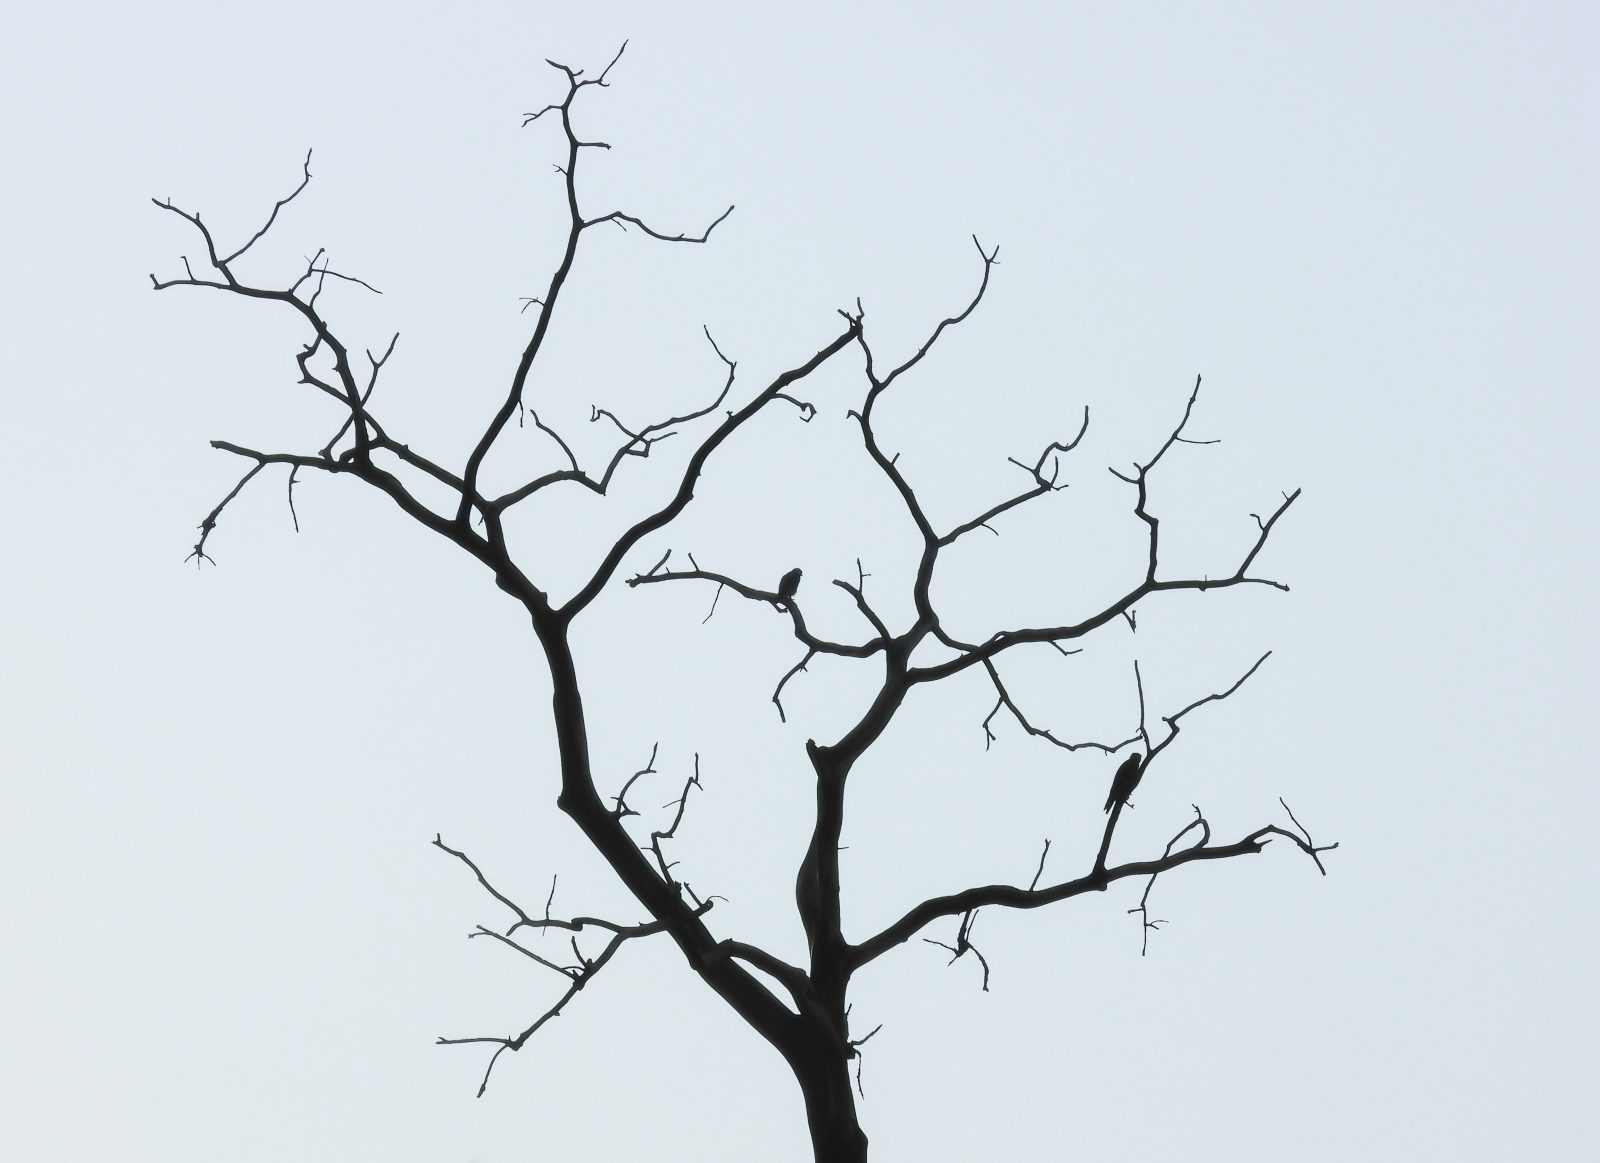 Two Copper's Hawks in Bare Tree on Cloudy Day